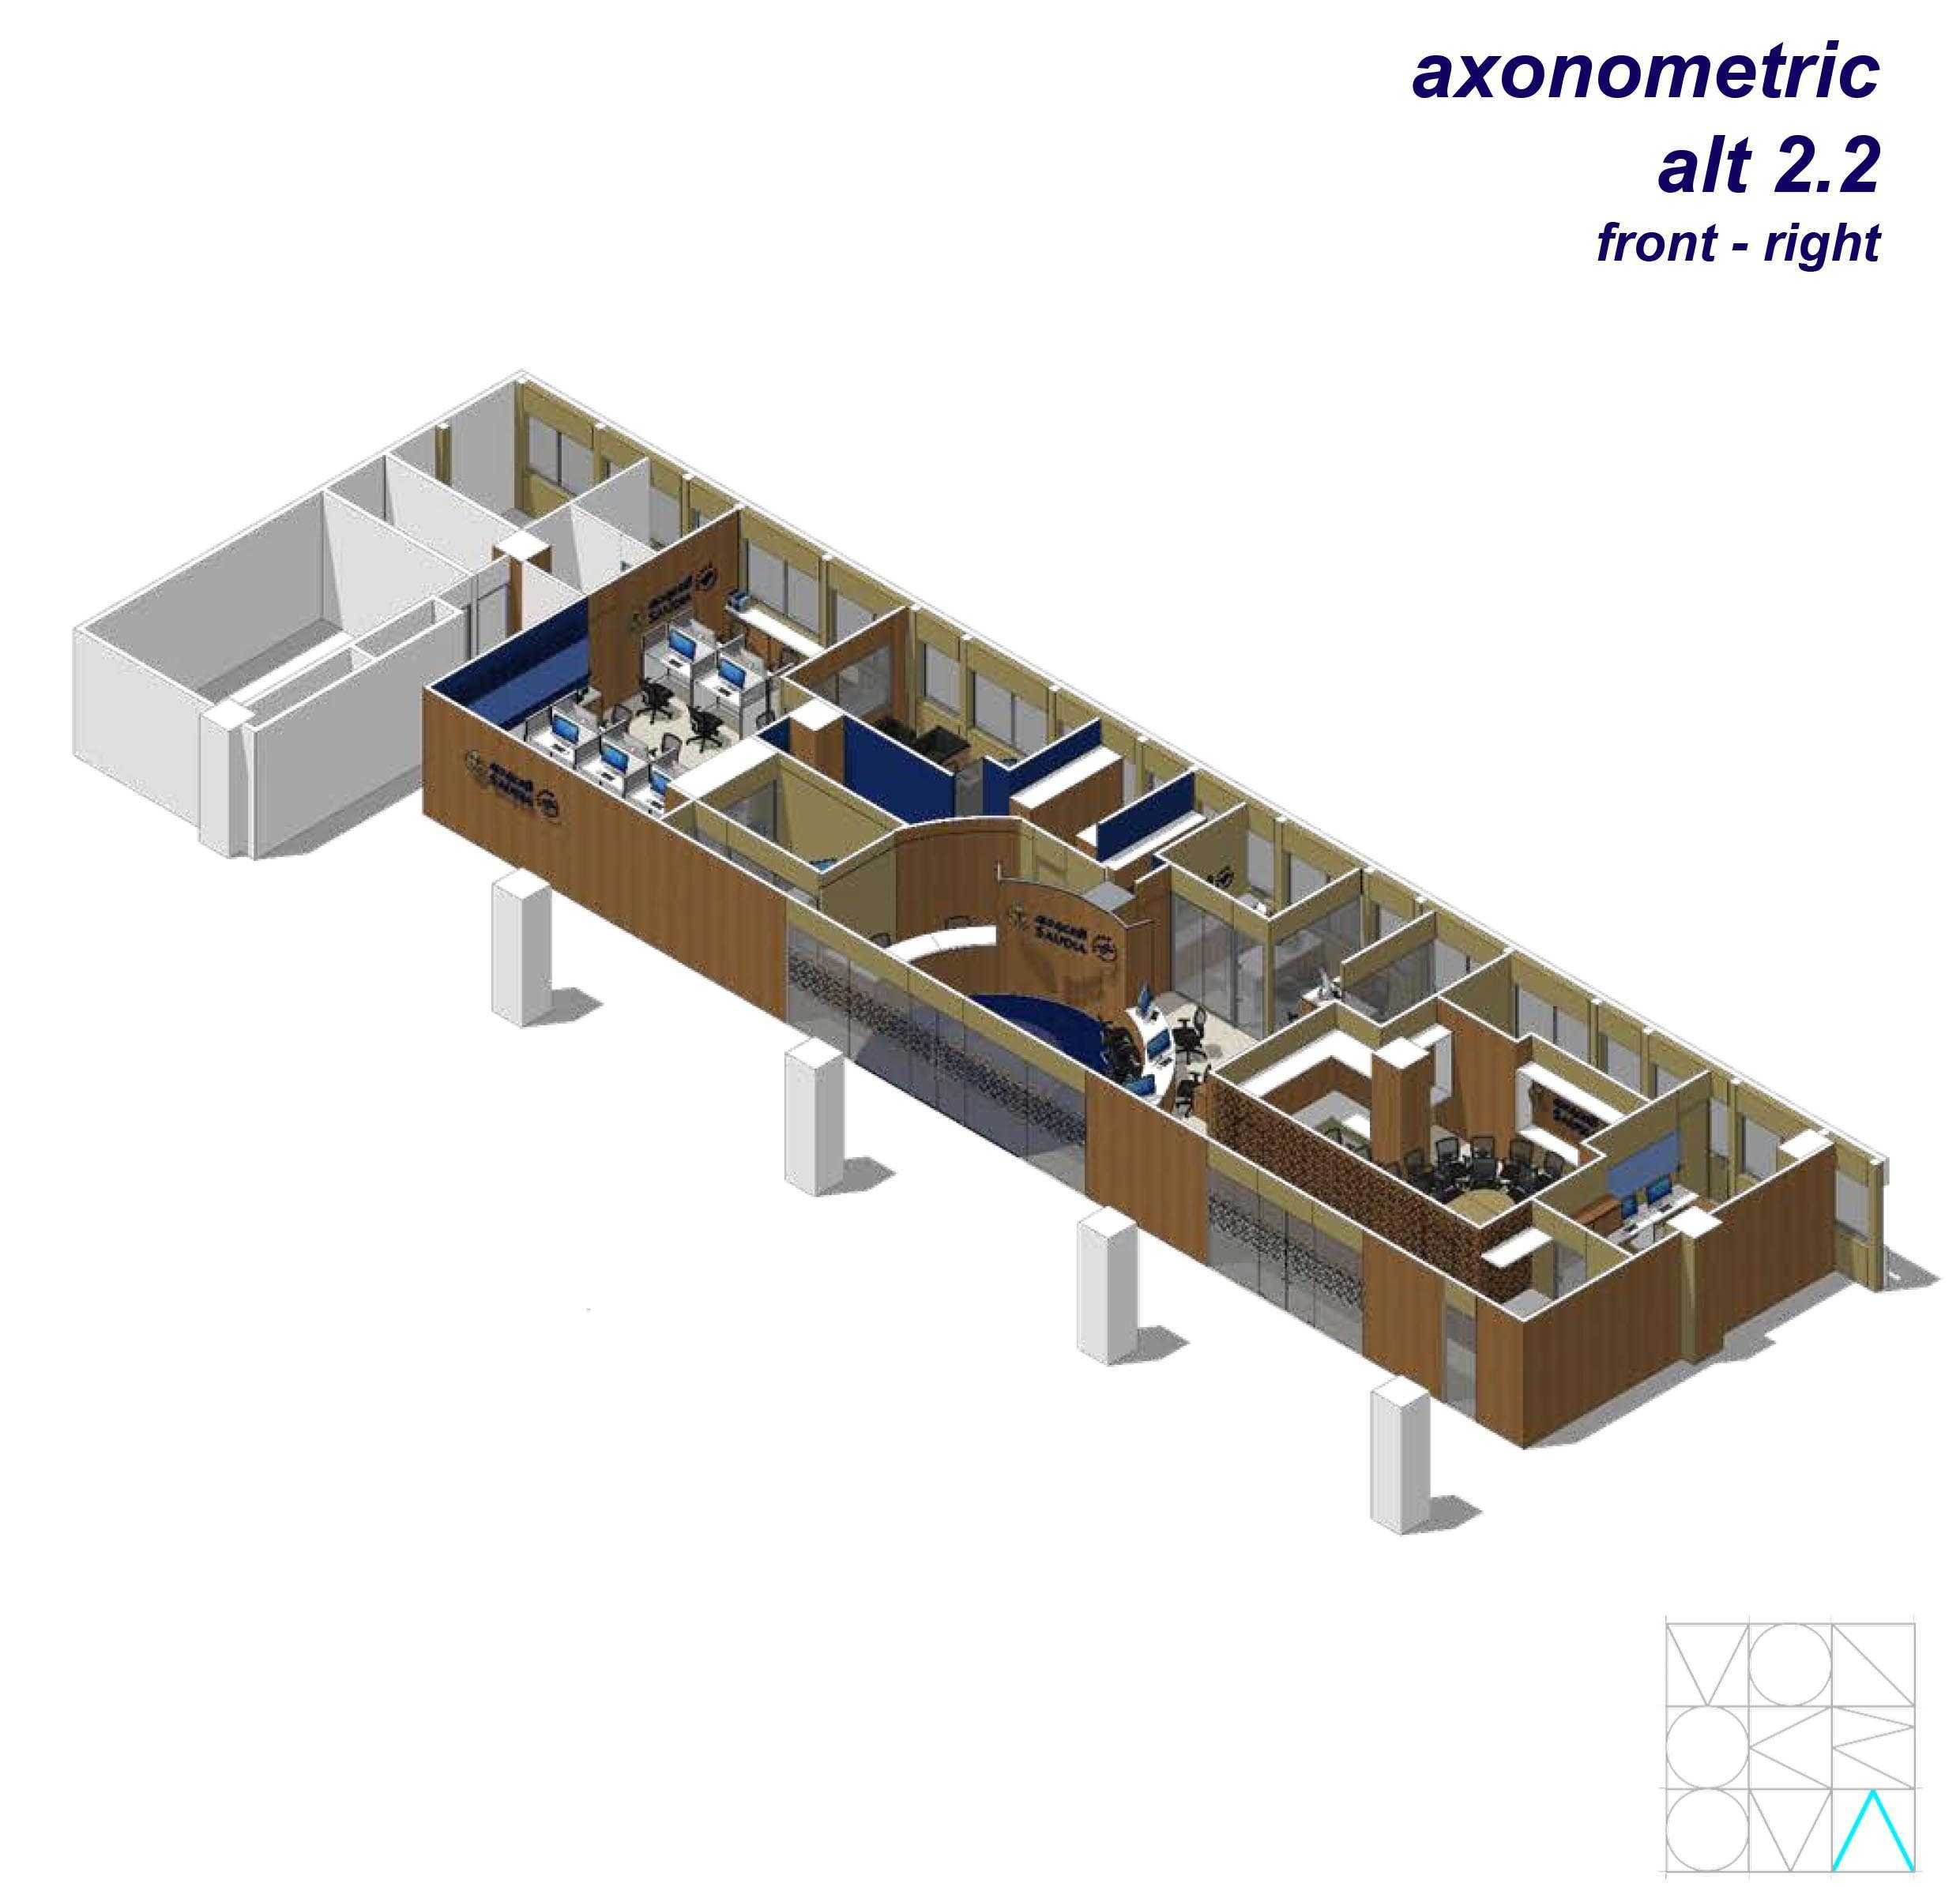 Monokroma Architect Saudi Arabian Airlines Office Soekarno Hatta Airport Terminal 3 Soekarno Hatta Airport Terminal 3 15-Axonometric-Alternative-2-2-Front-Right Modern  14737